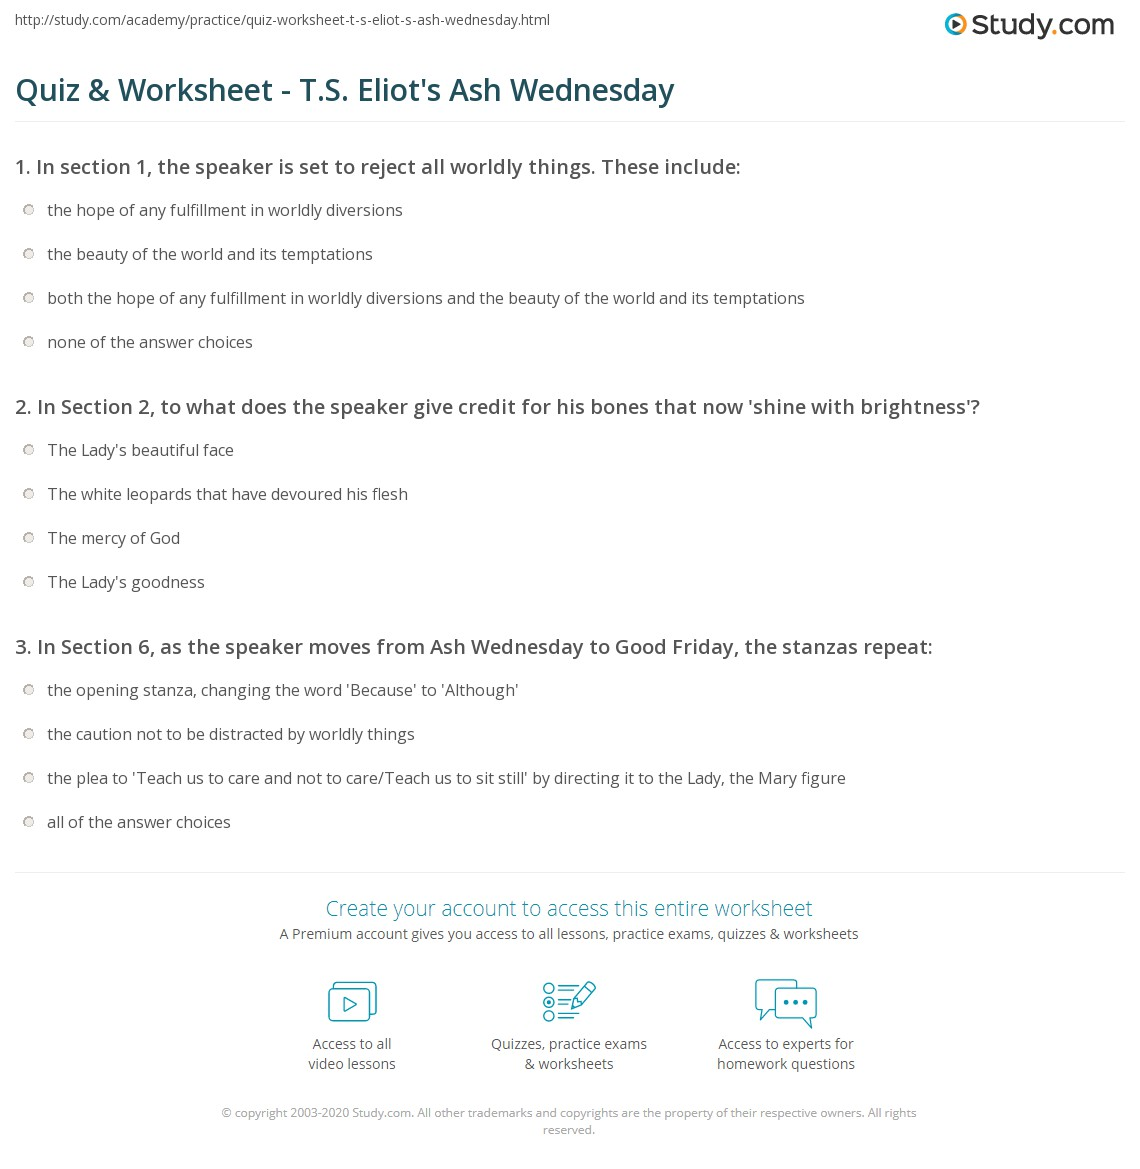 Print T.S. Eliot's Ash Wednesday: Summary & Analysis Worksheet